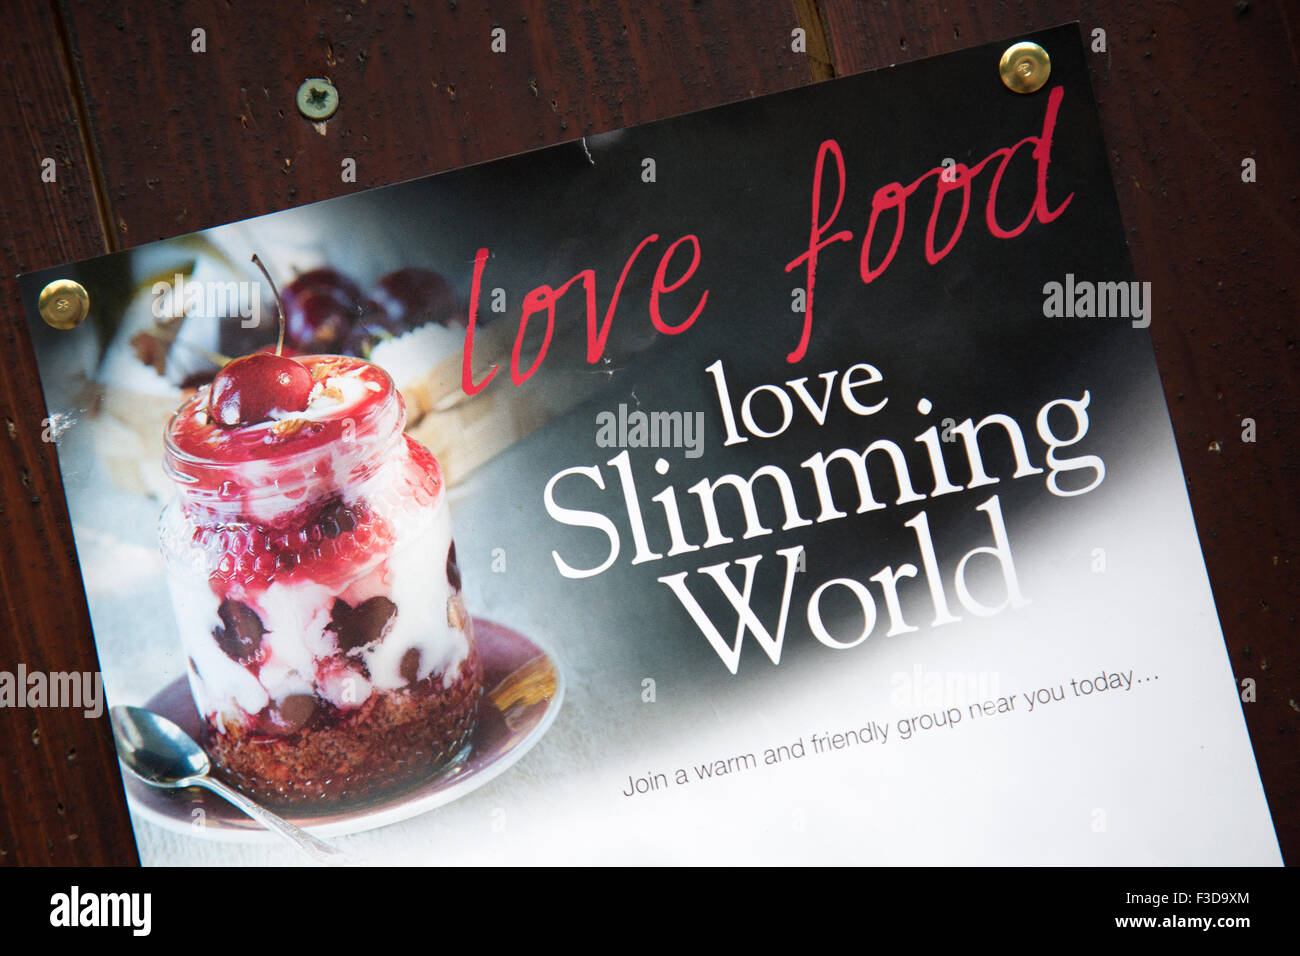 A Slimming World advert on a notice board. - Stock Image